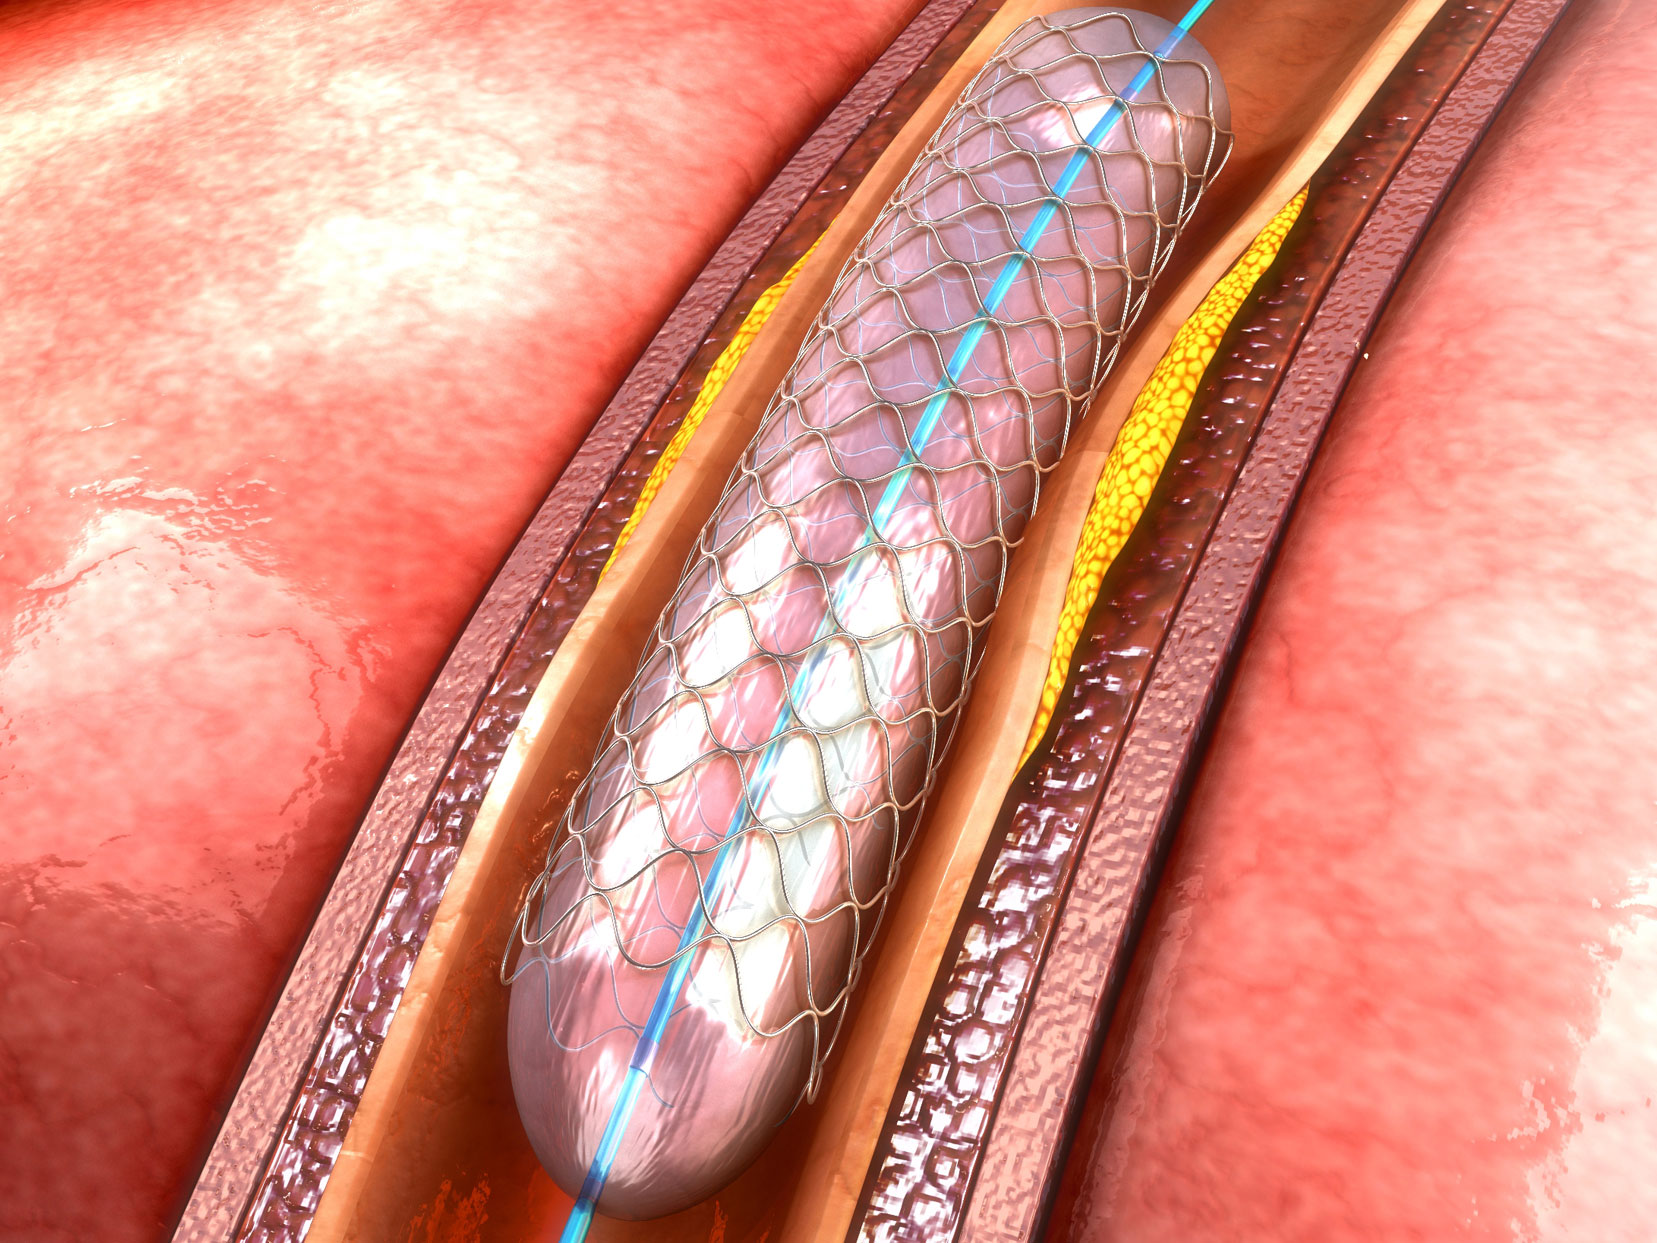 Stents don't work